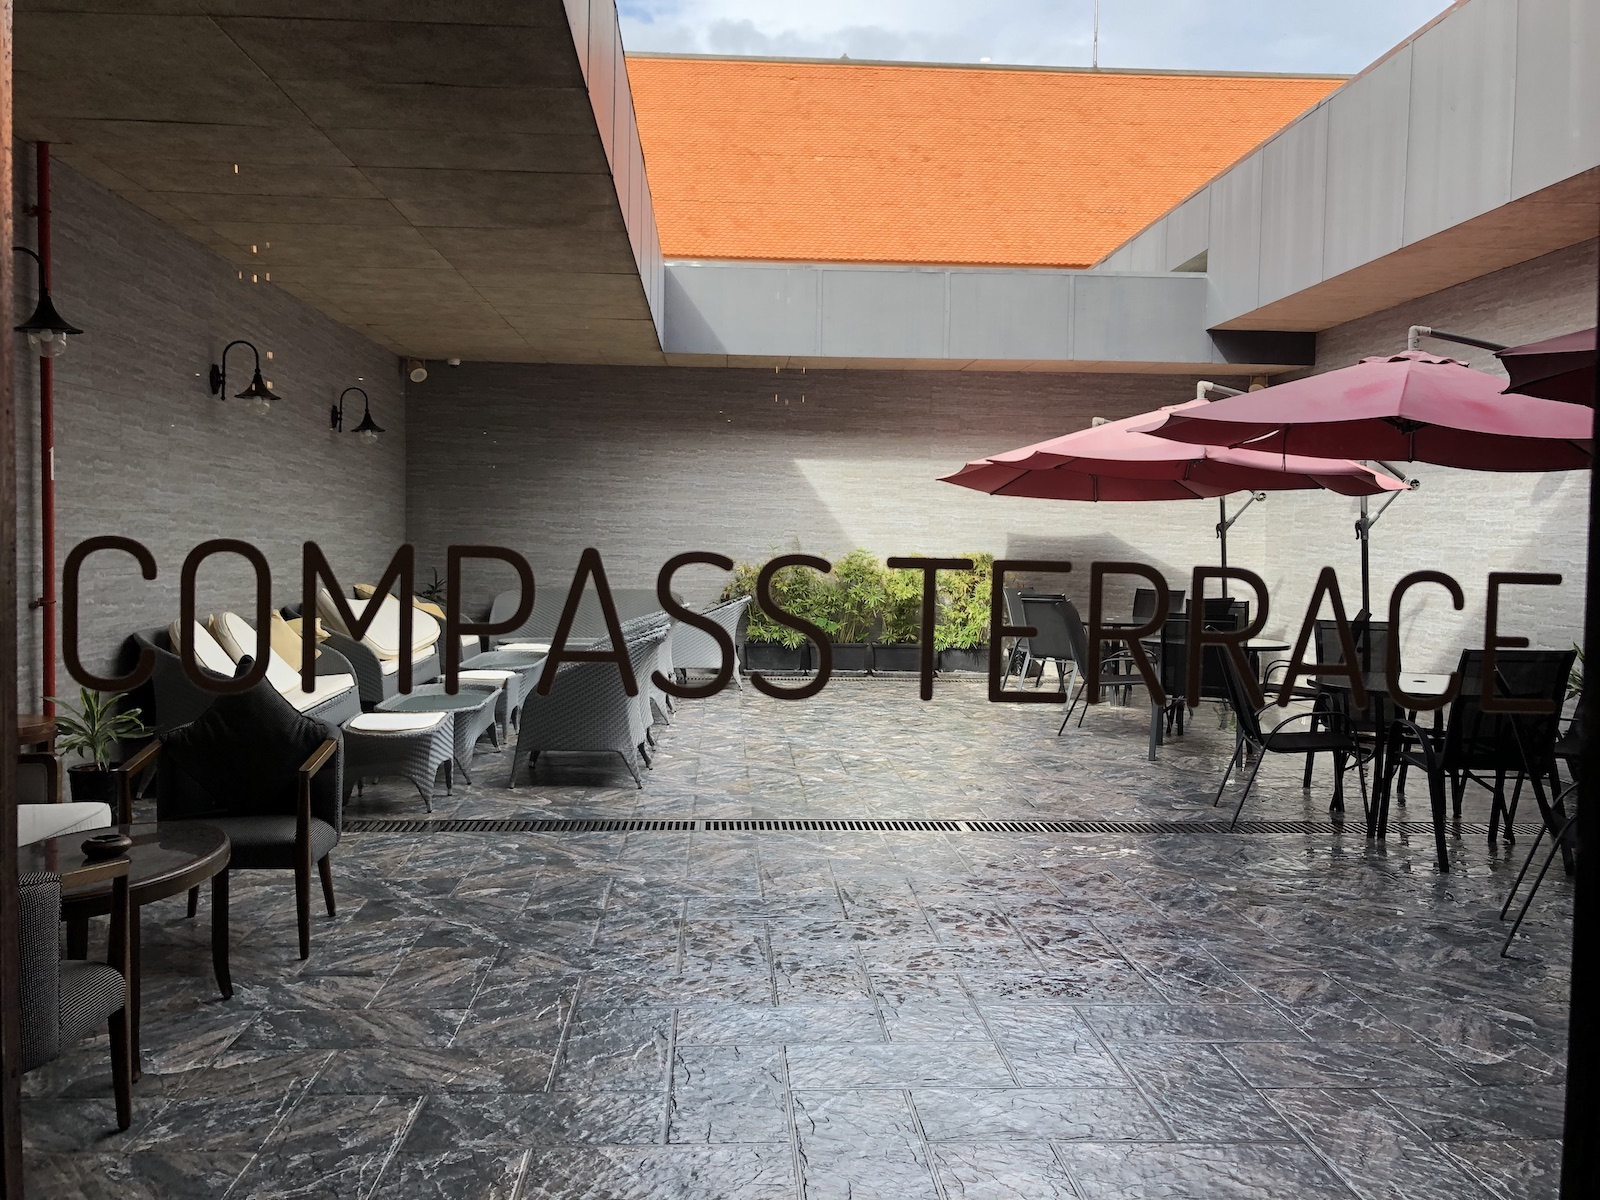 Compass Terrace at Plaza Premium Lounge